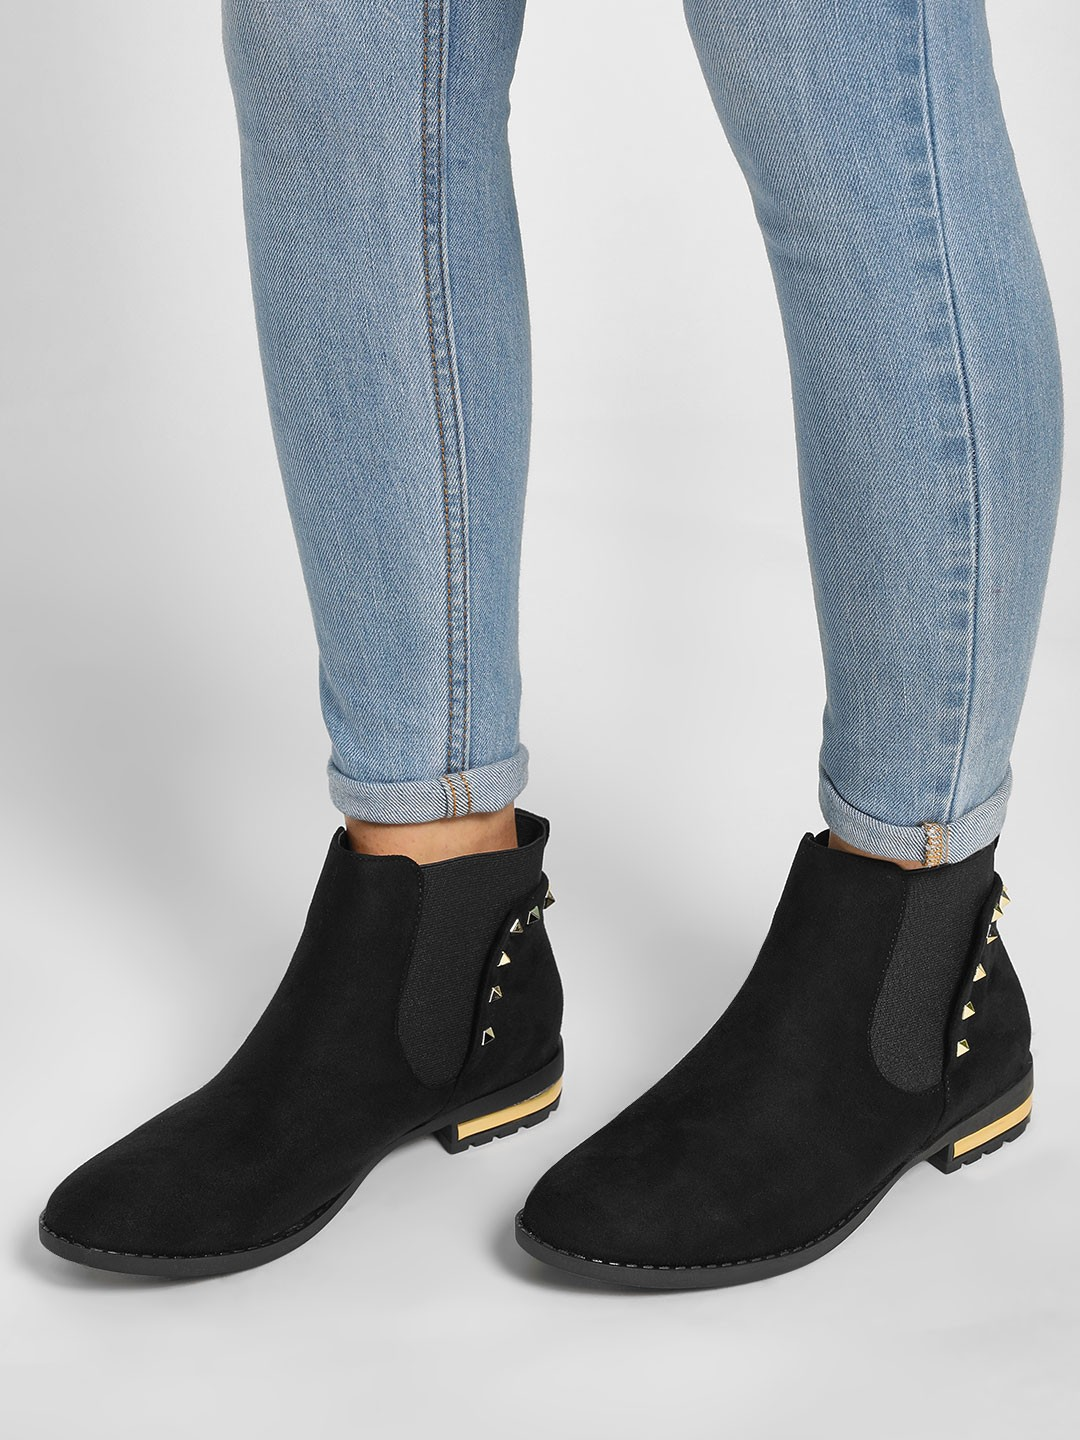 Happy Feet Black Studded Chelsea Boots 1